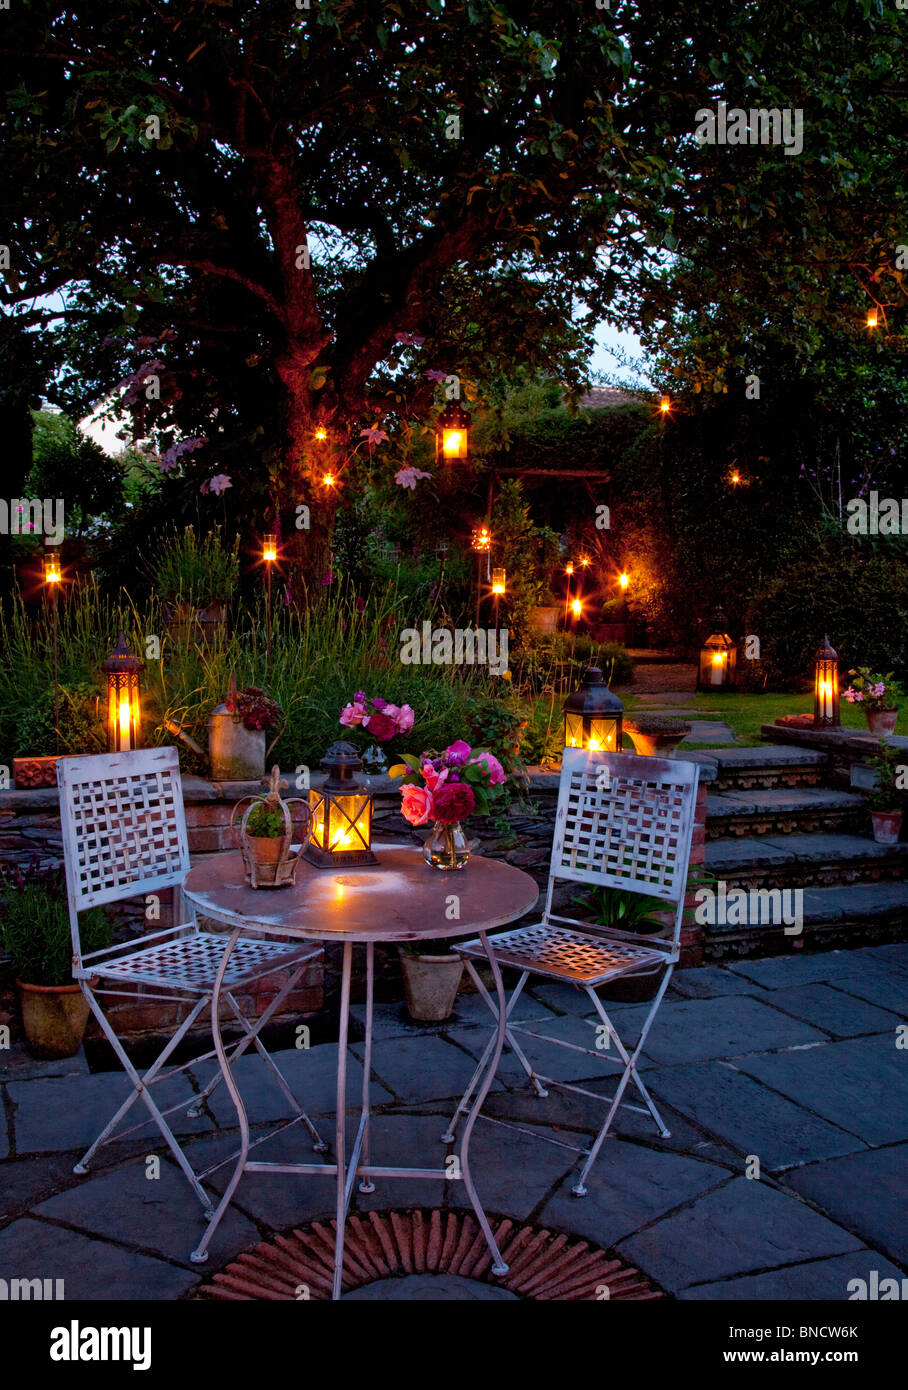 Superior Metal Table And Chairs On Patio With Candles And Lanterns In Garden At Night